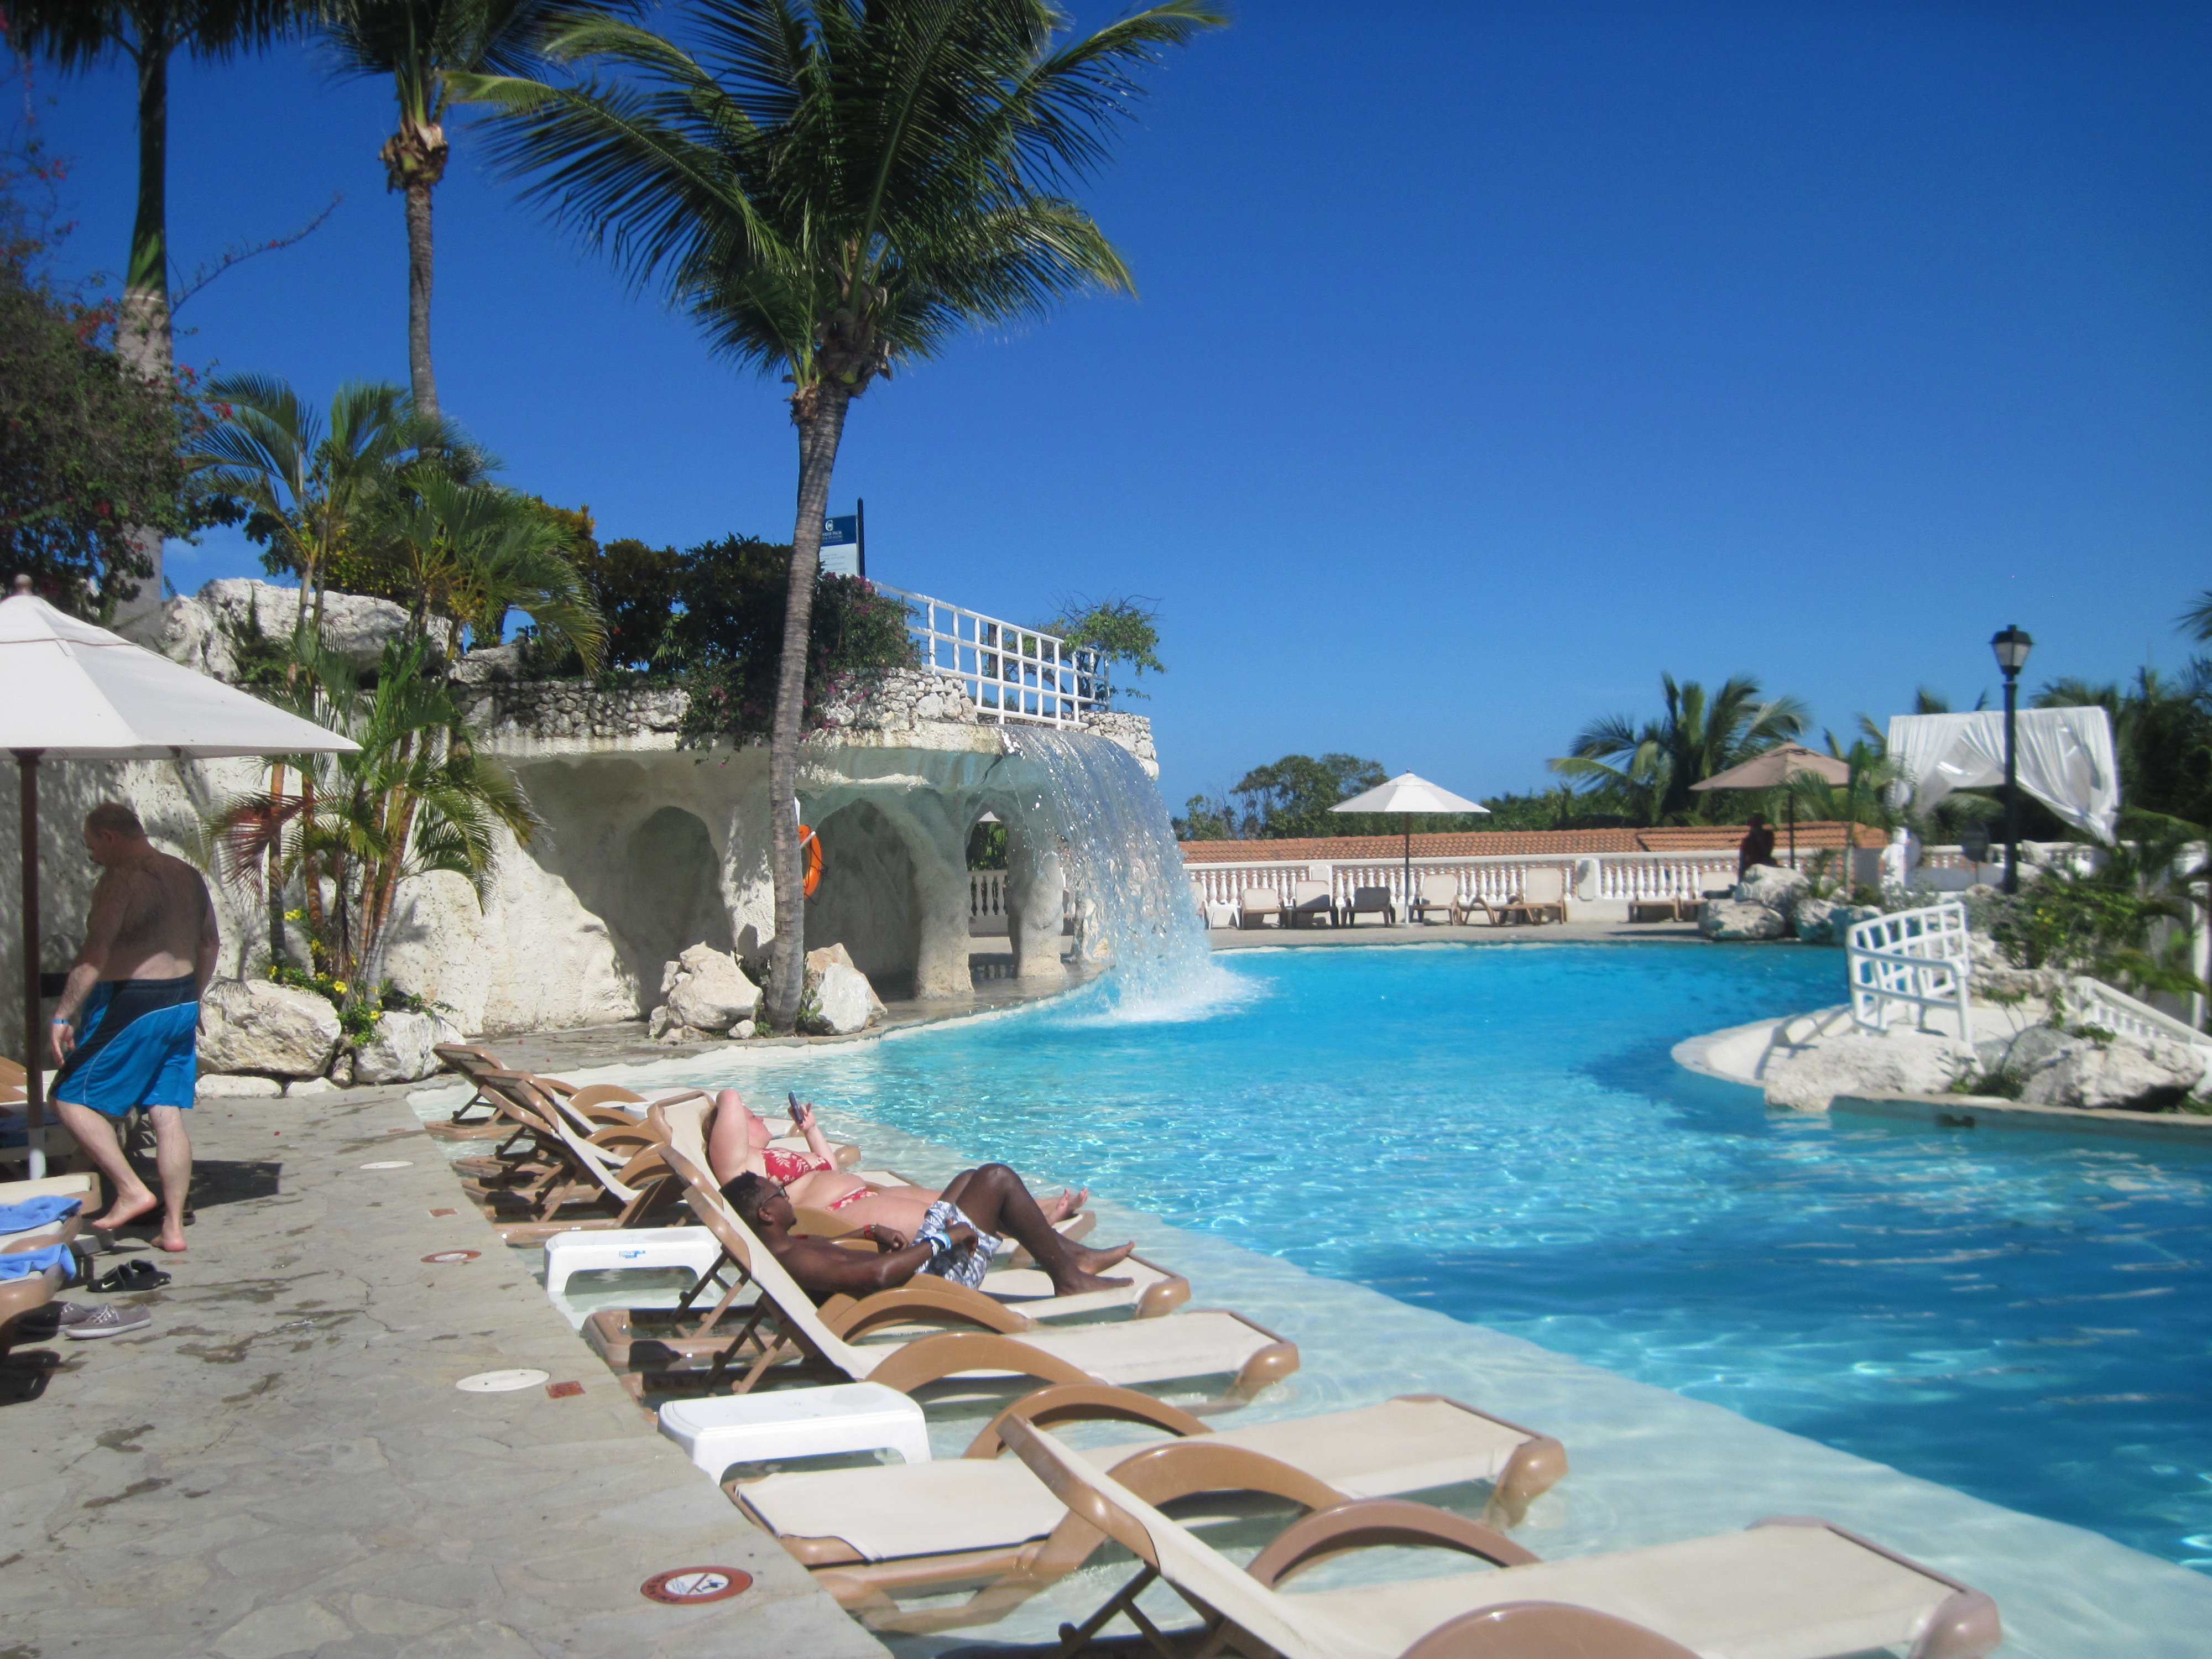 Cheap 19 All Inclusive Resort  for LastMinute Travel